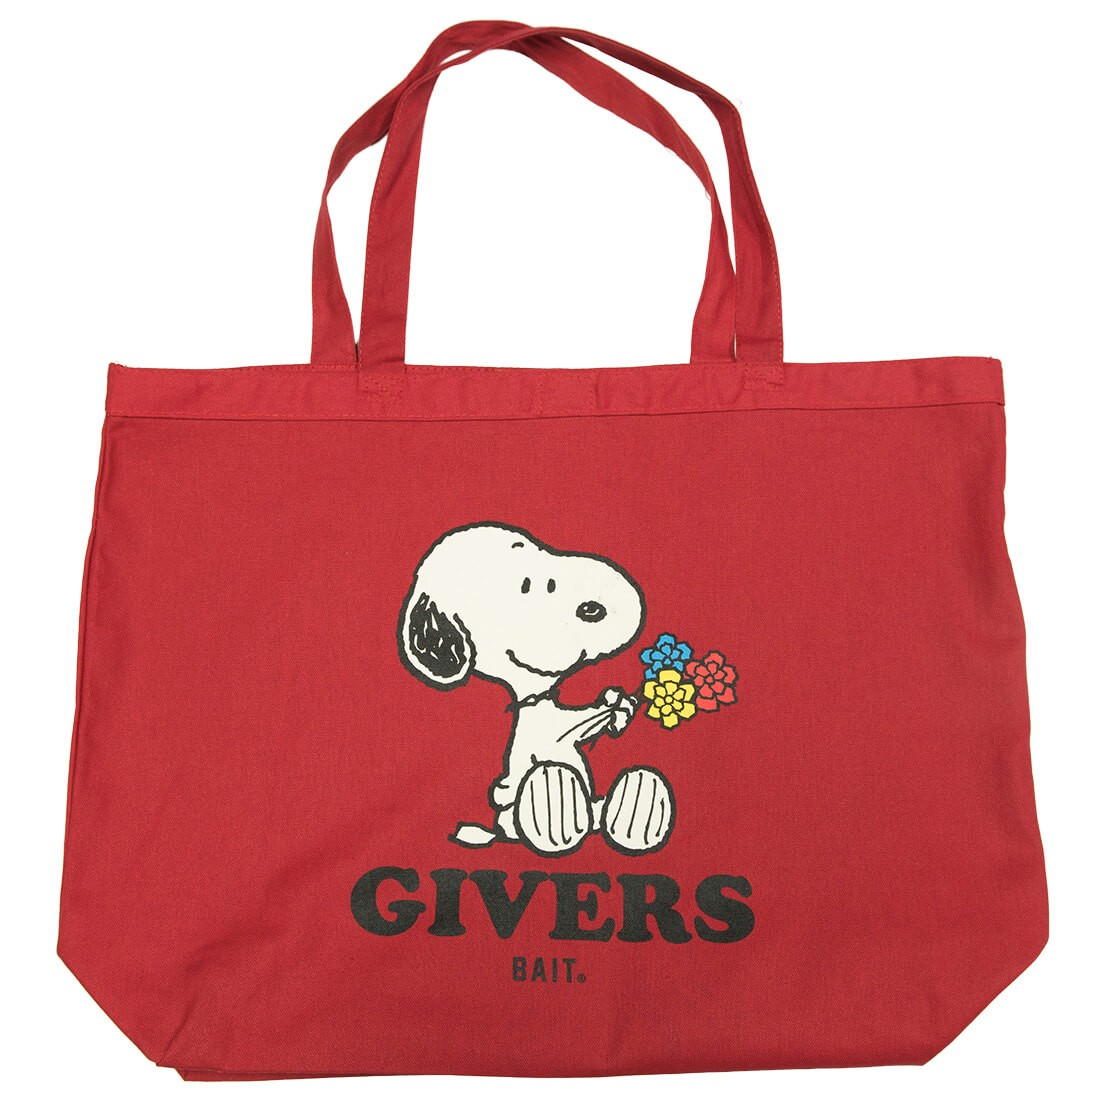 BAIT x Snoopy Givers Tote Bag (red / canvas)